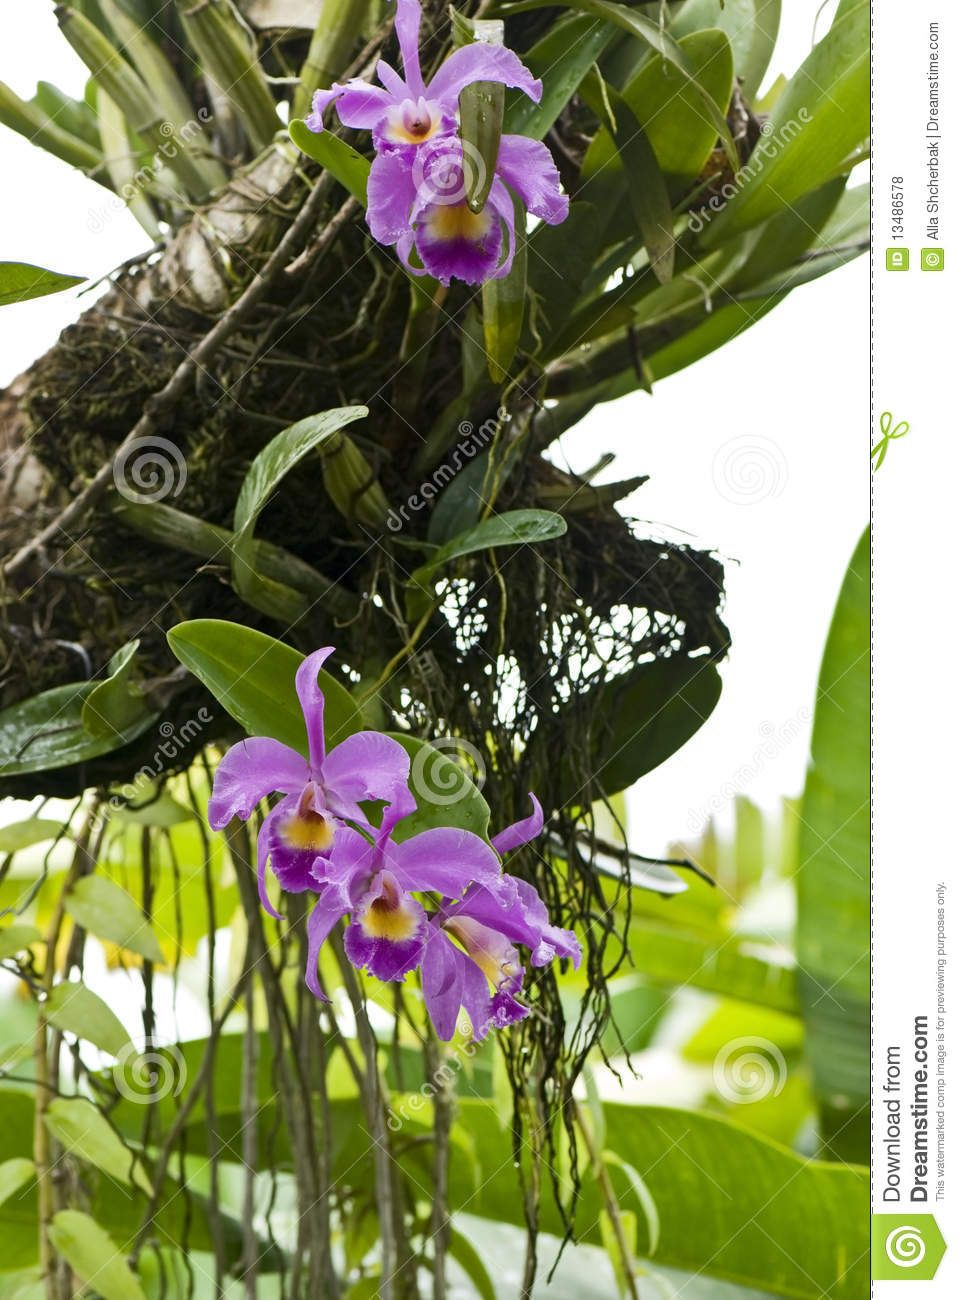 Orchids Growing On A Tree Download From Over 38 Million High Quality Stock Photos Images Vectors Sign Up Beautiful Flowers Garden Orchids Cattleya Orchid